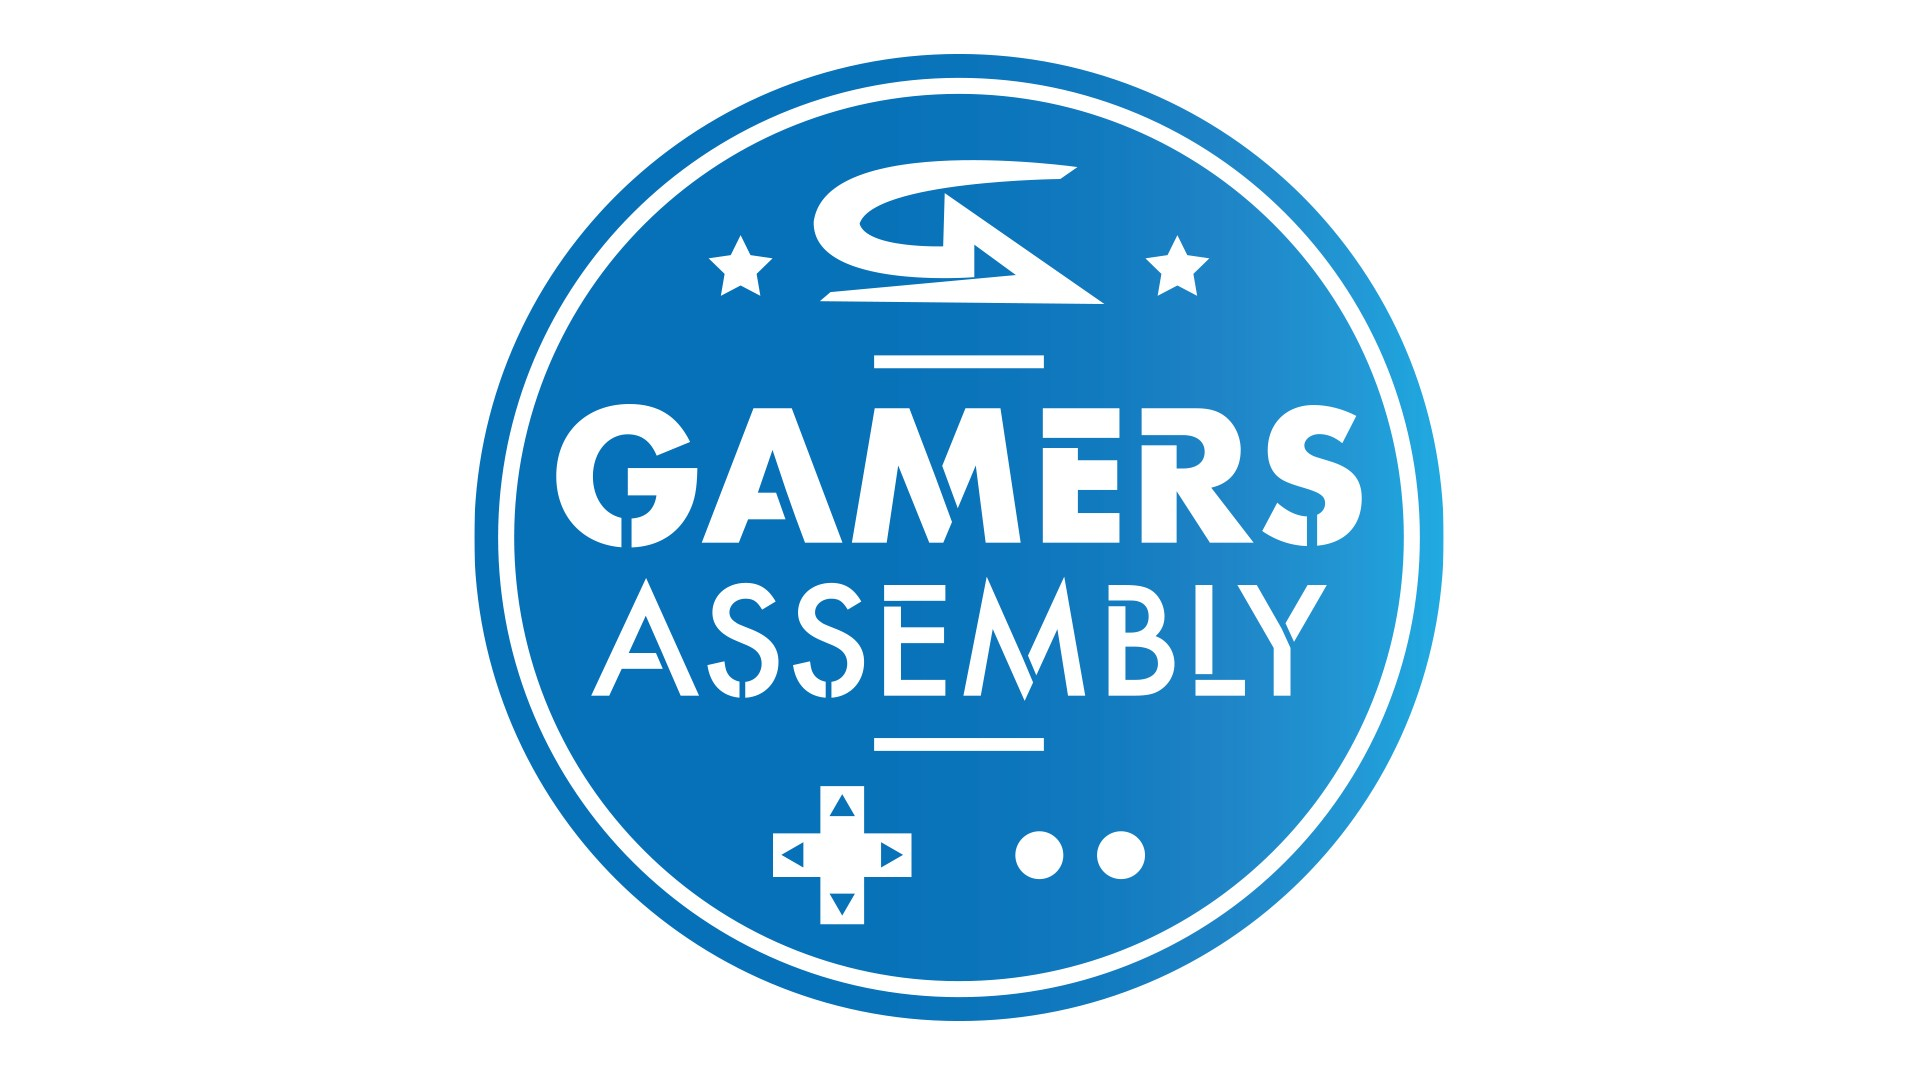 Gamers Assembly (1) Poitiers 2021